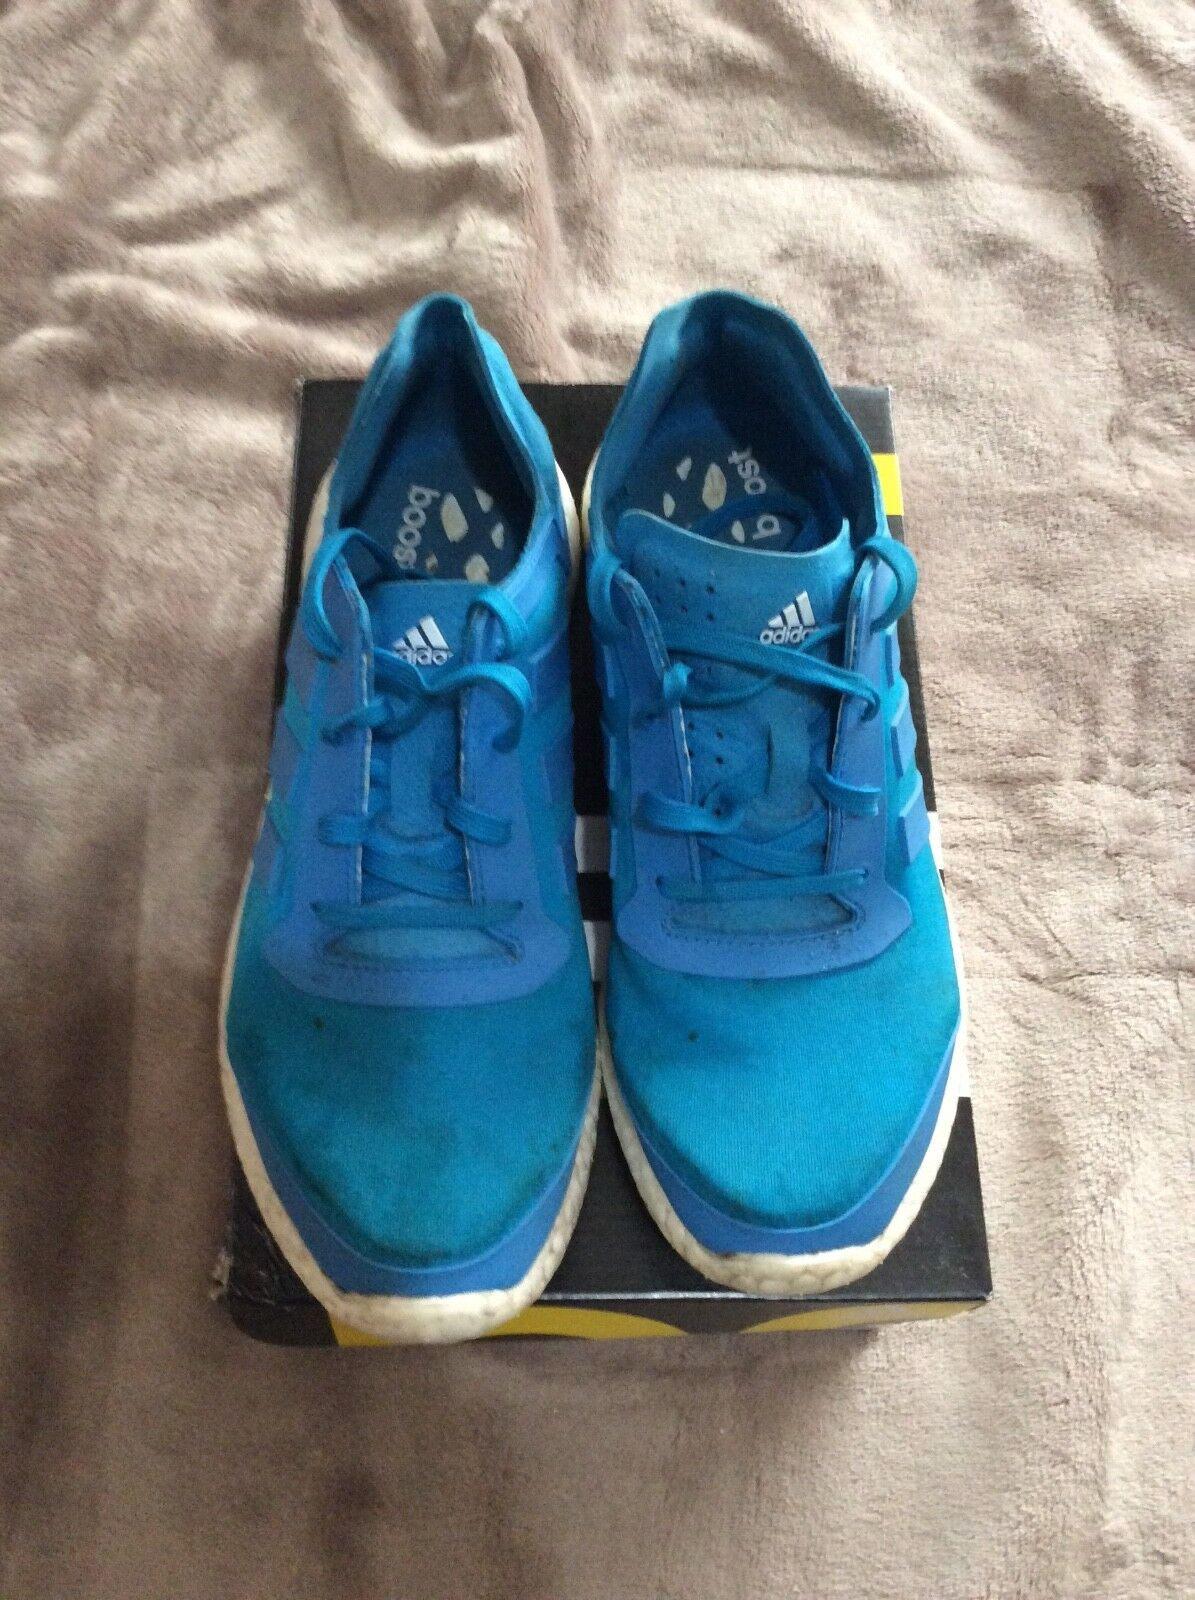 Pre owned adidas mens pureboost blue size 9 The latest discount shoes for men and women